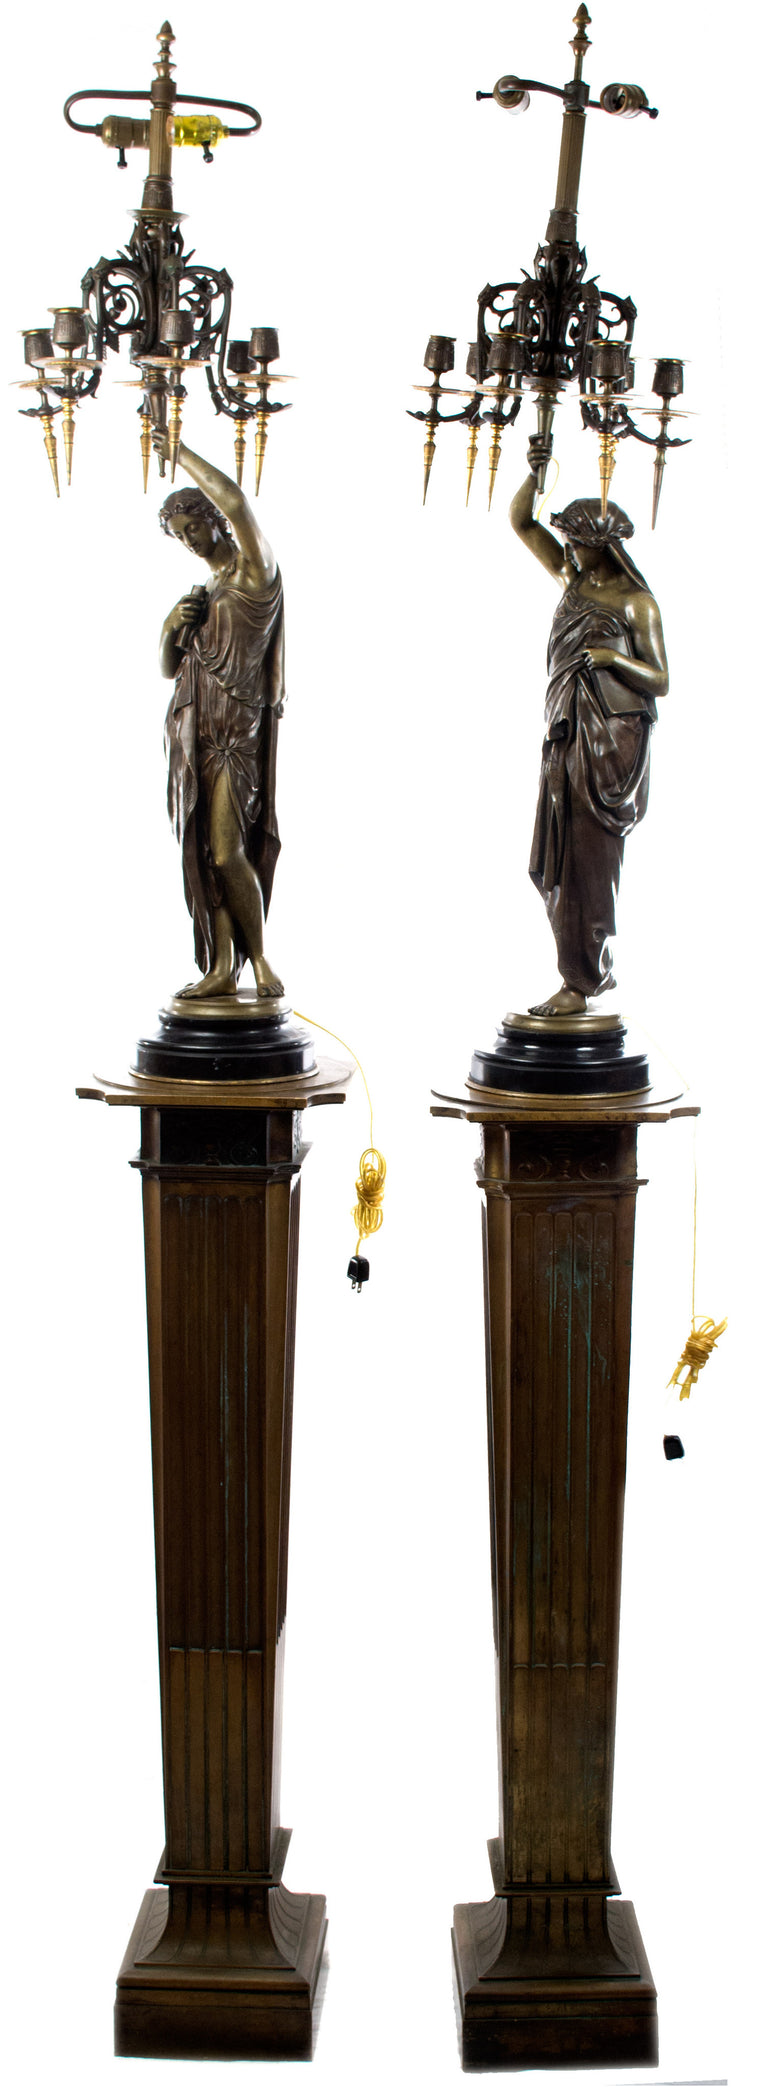 A Pair of Monumental Bronze Candelabra Sculptures on Stands by Émile Picault